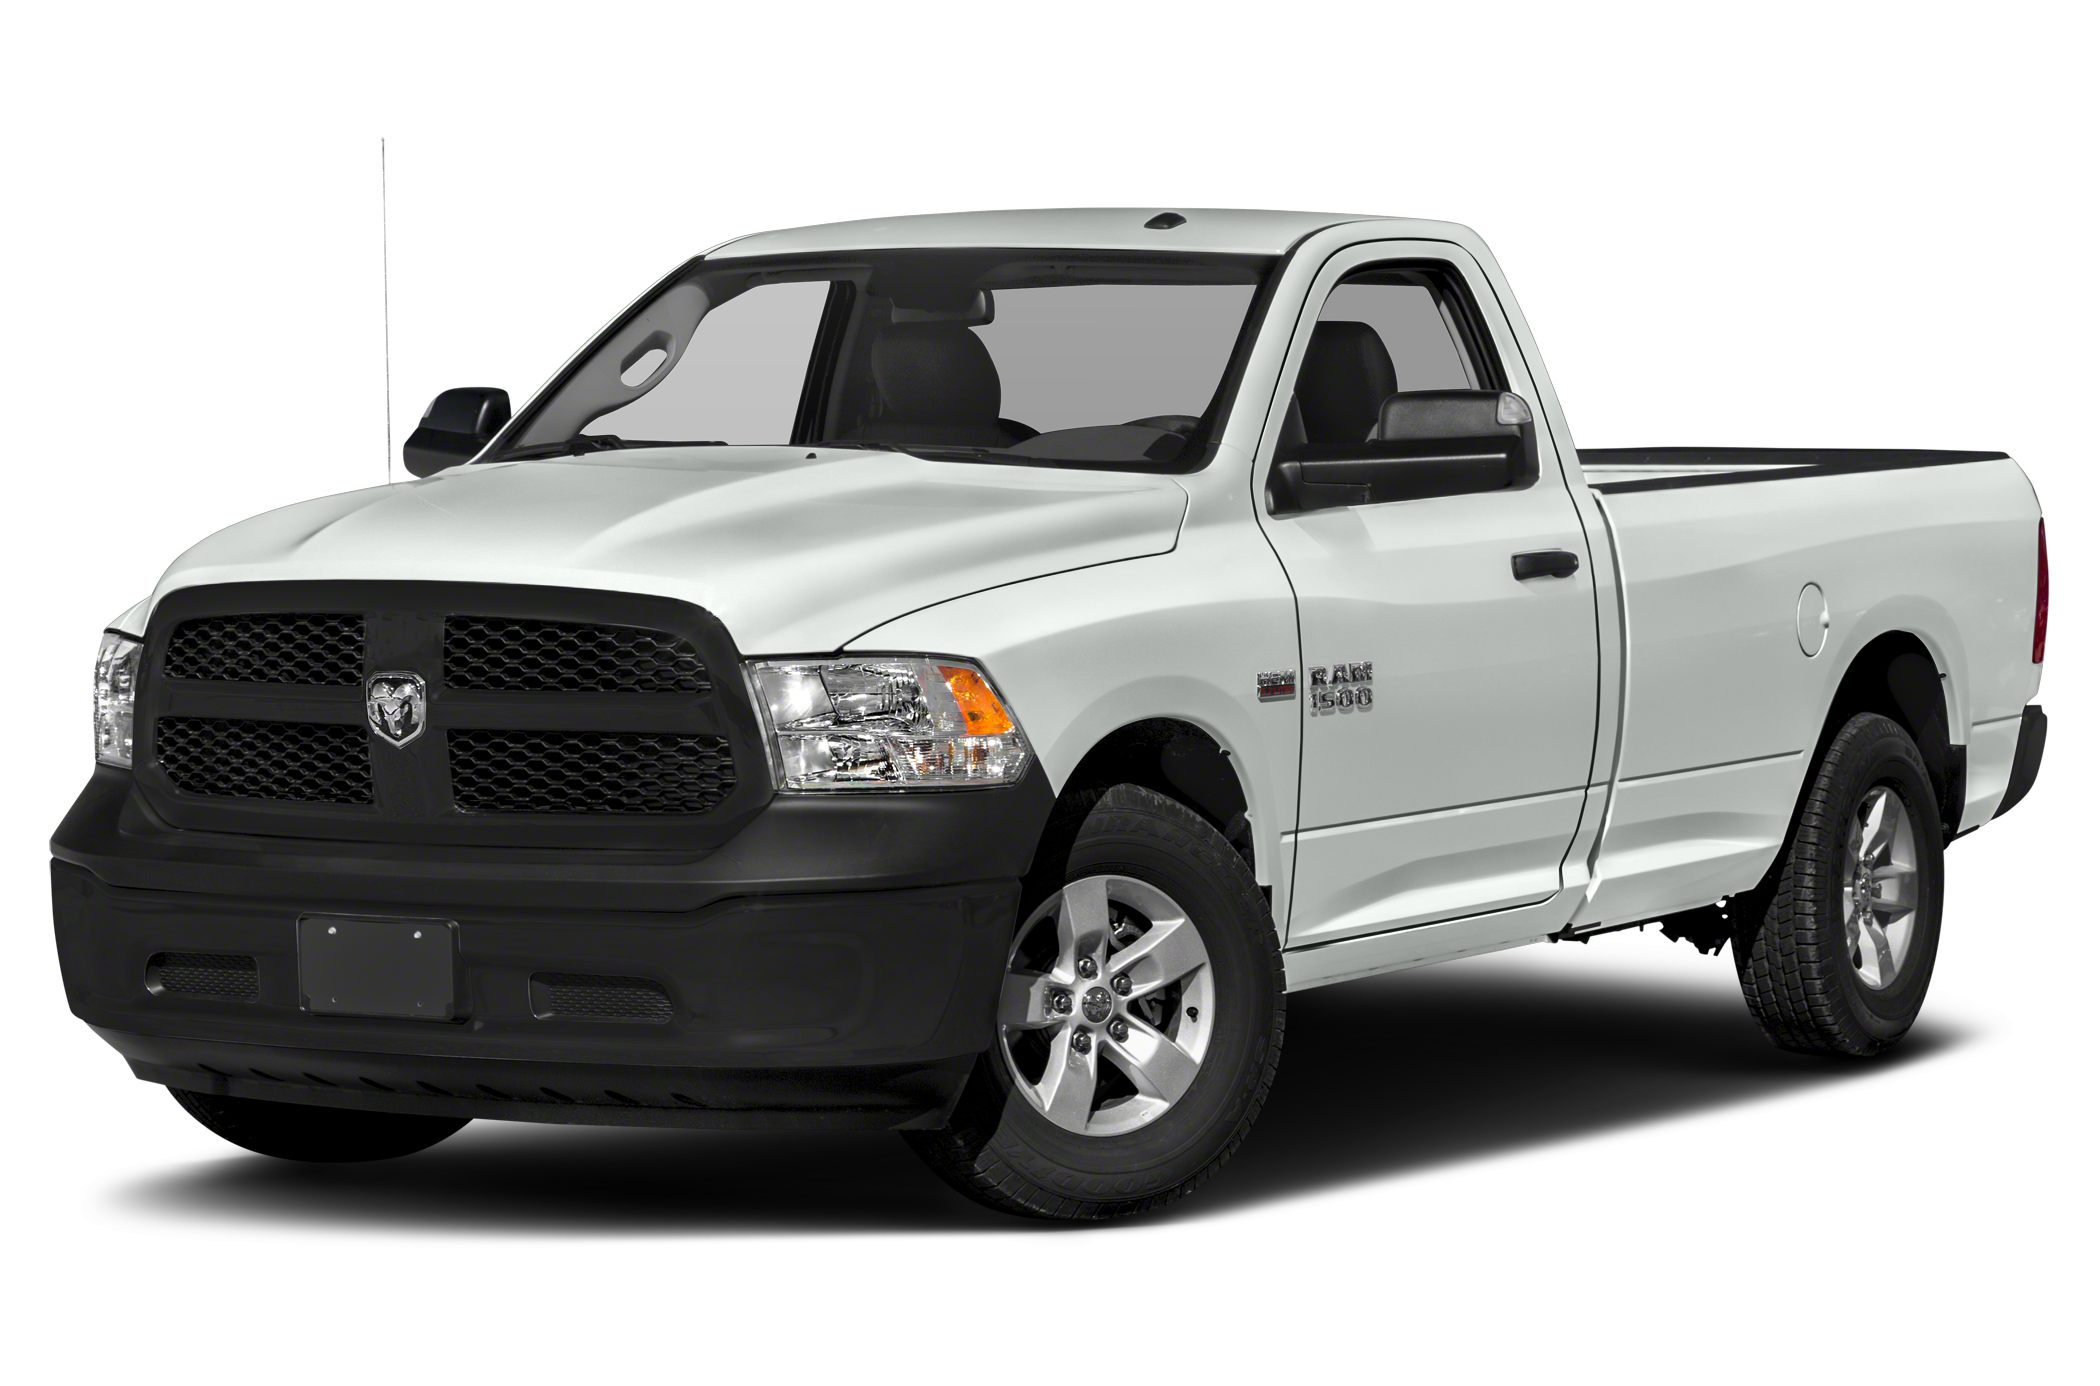 2018 RAM 1500 vs 2018 Ford F 150 and 2018 GMC Sierra 1500 Overview